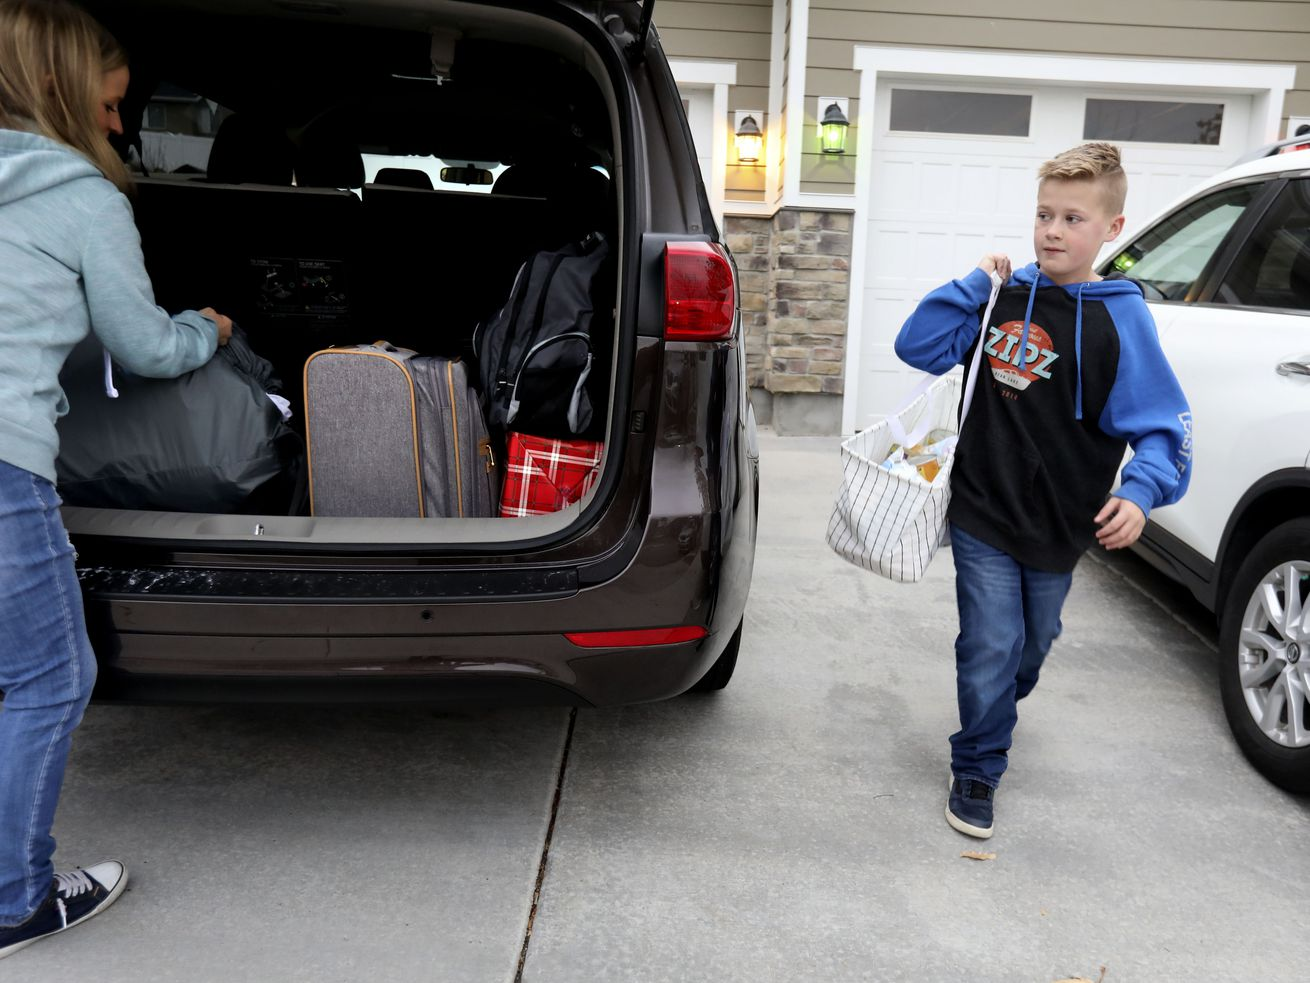 Bryce Spindle, 11, and his mother, Kendra, pack the car at their Herriman home before driving to Arizona on Friday, Nov. 22, 2019.